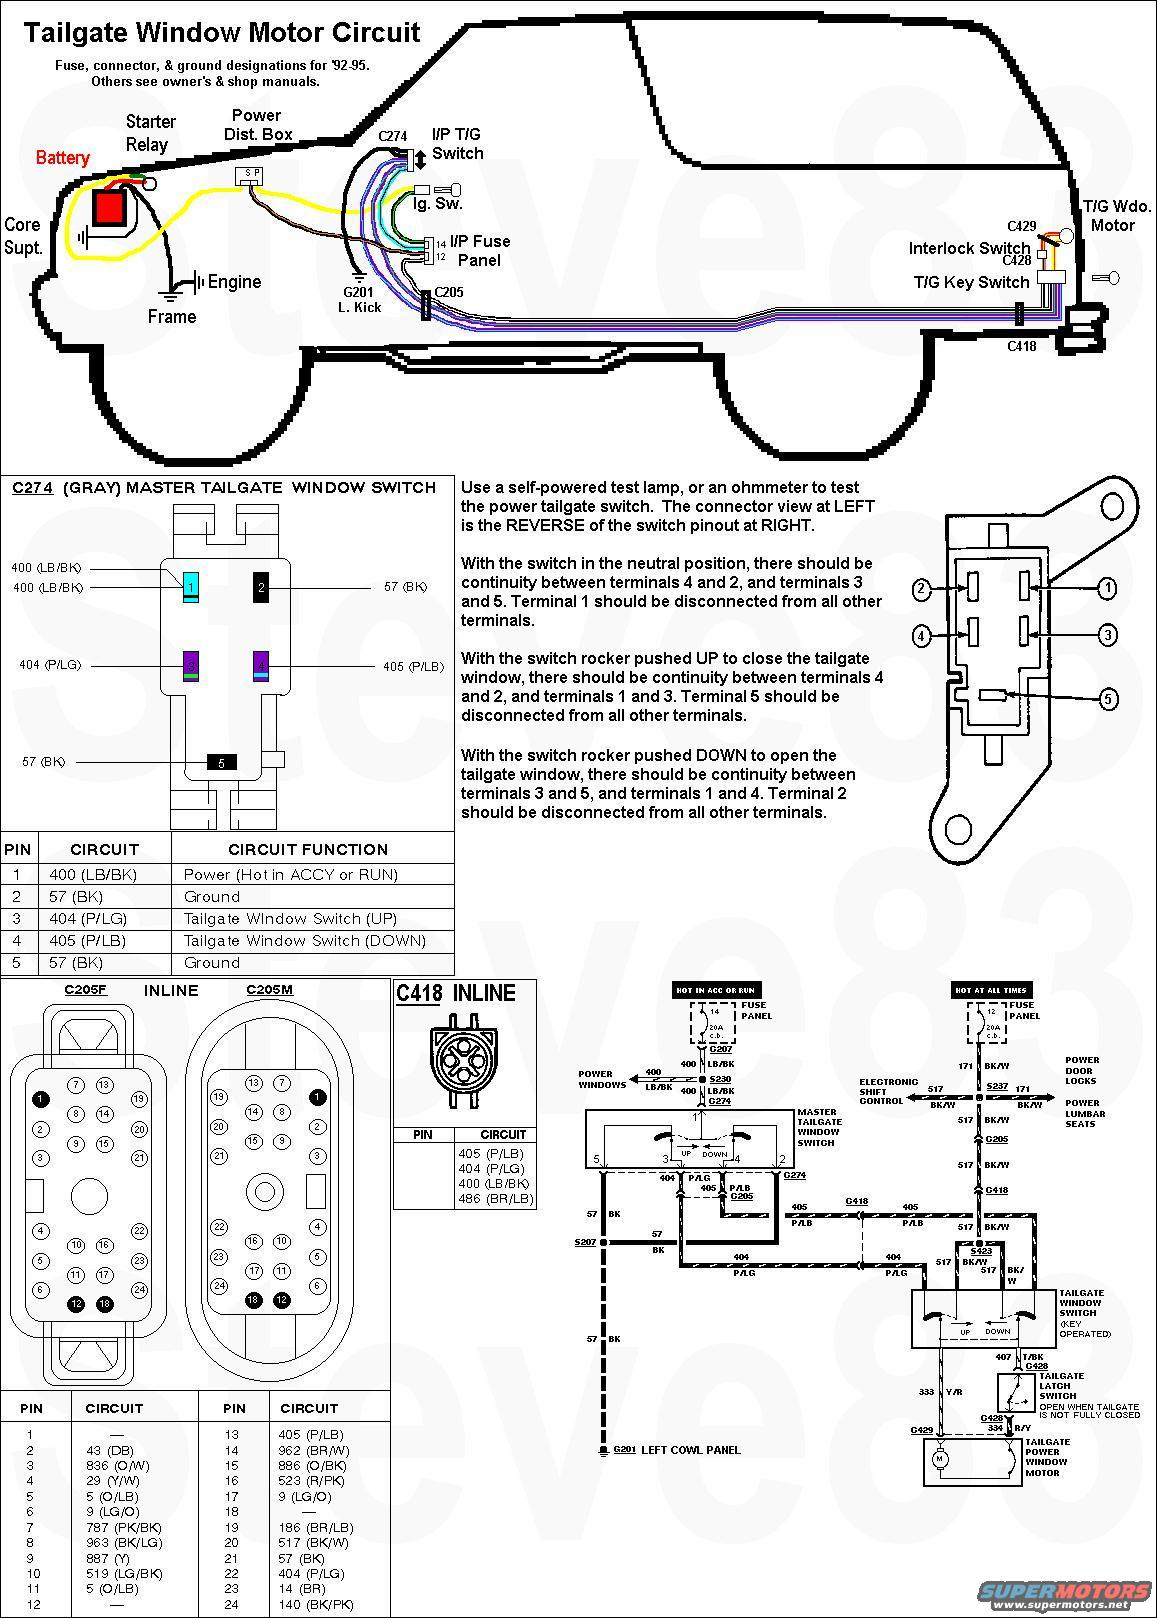 tailgate diagram wiring diagram for 1974 ford bronco the wiring diagram Ford F-250 Wiring Diagram at soozxer.org